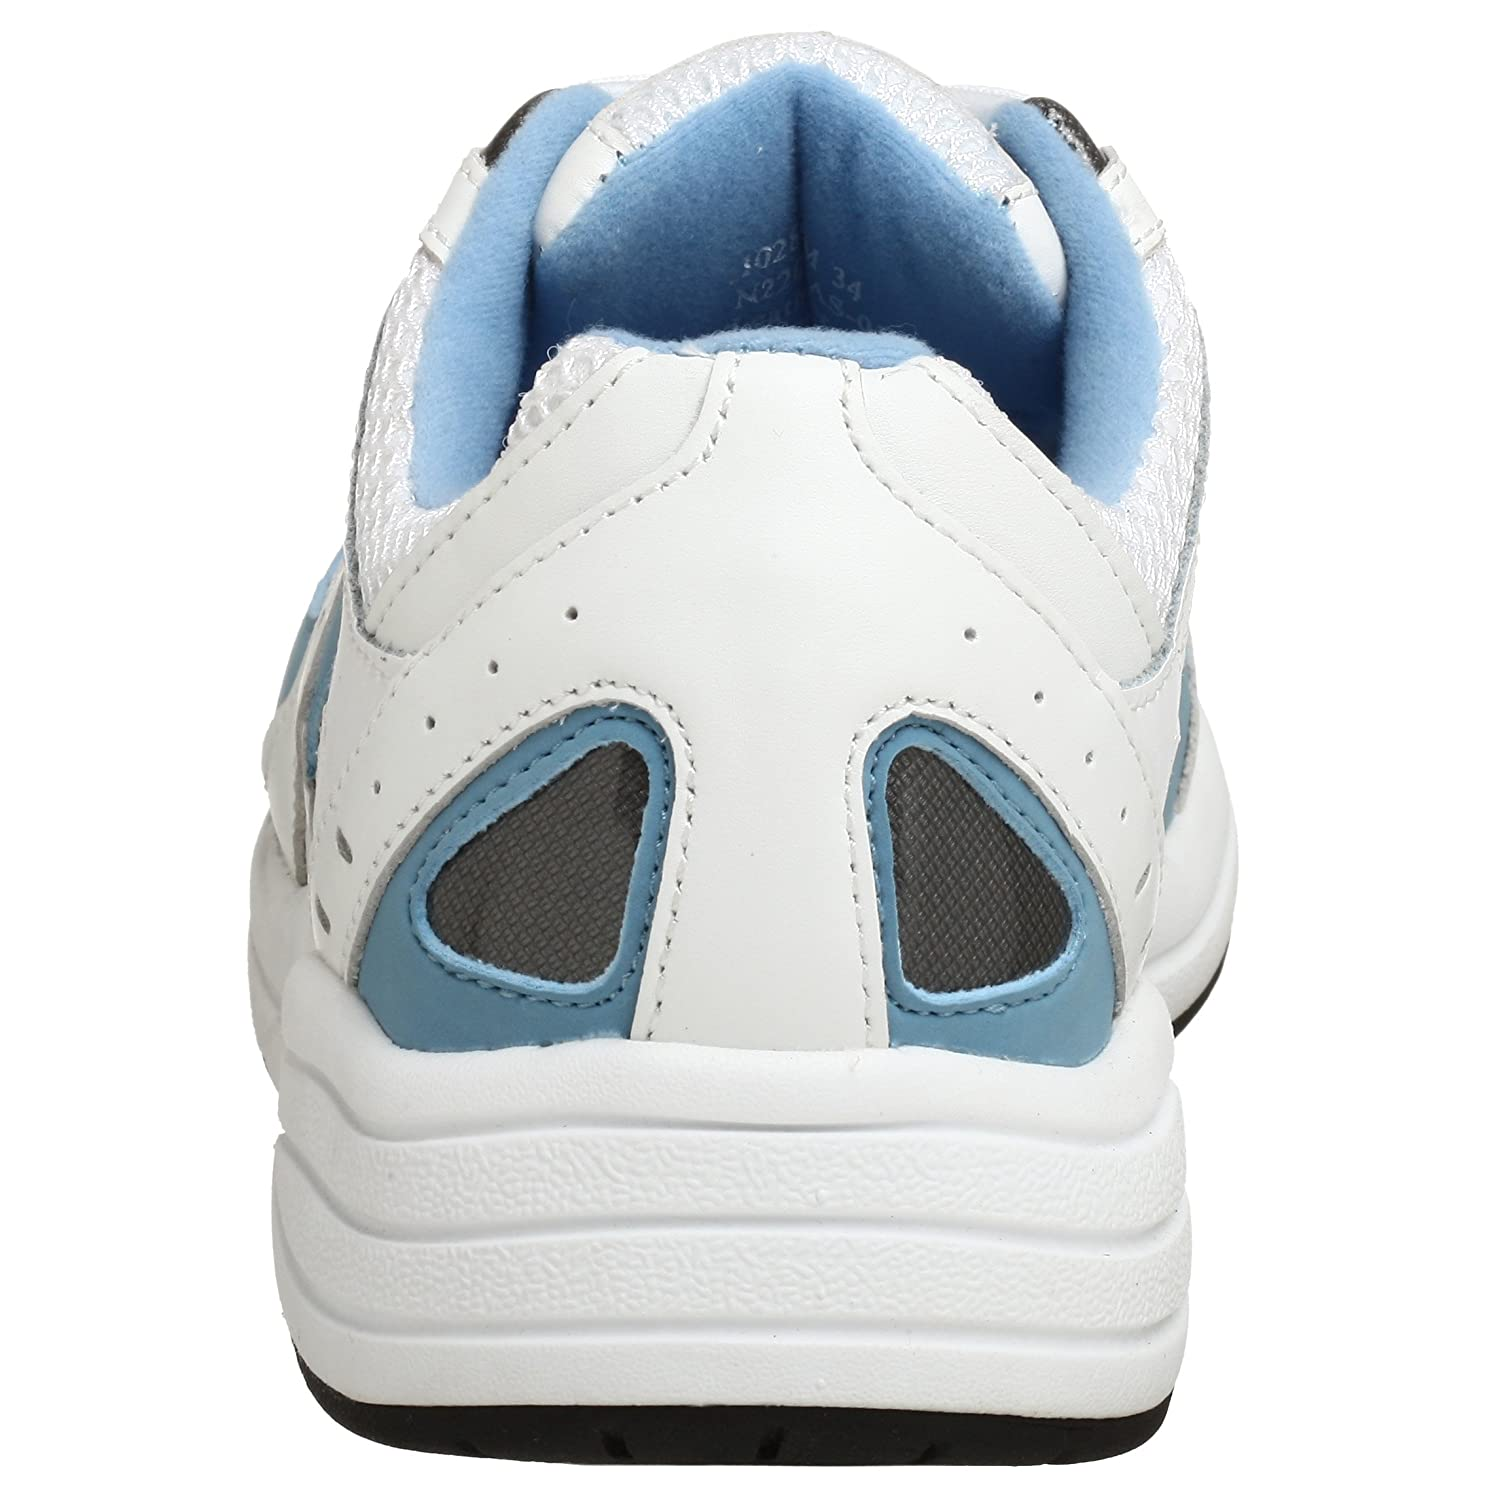 Drew Shoe Women's 11 Flare Walking Shoe B001ATTOKC 11 Women's 4E US|White/Blue cd9cfd